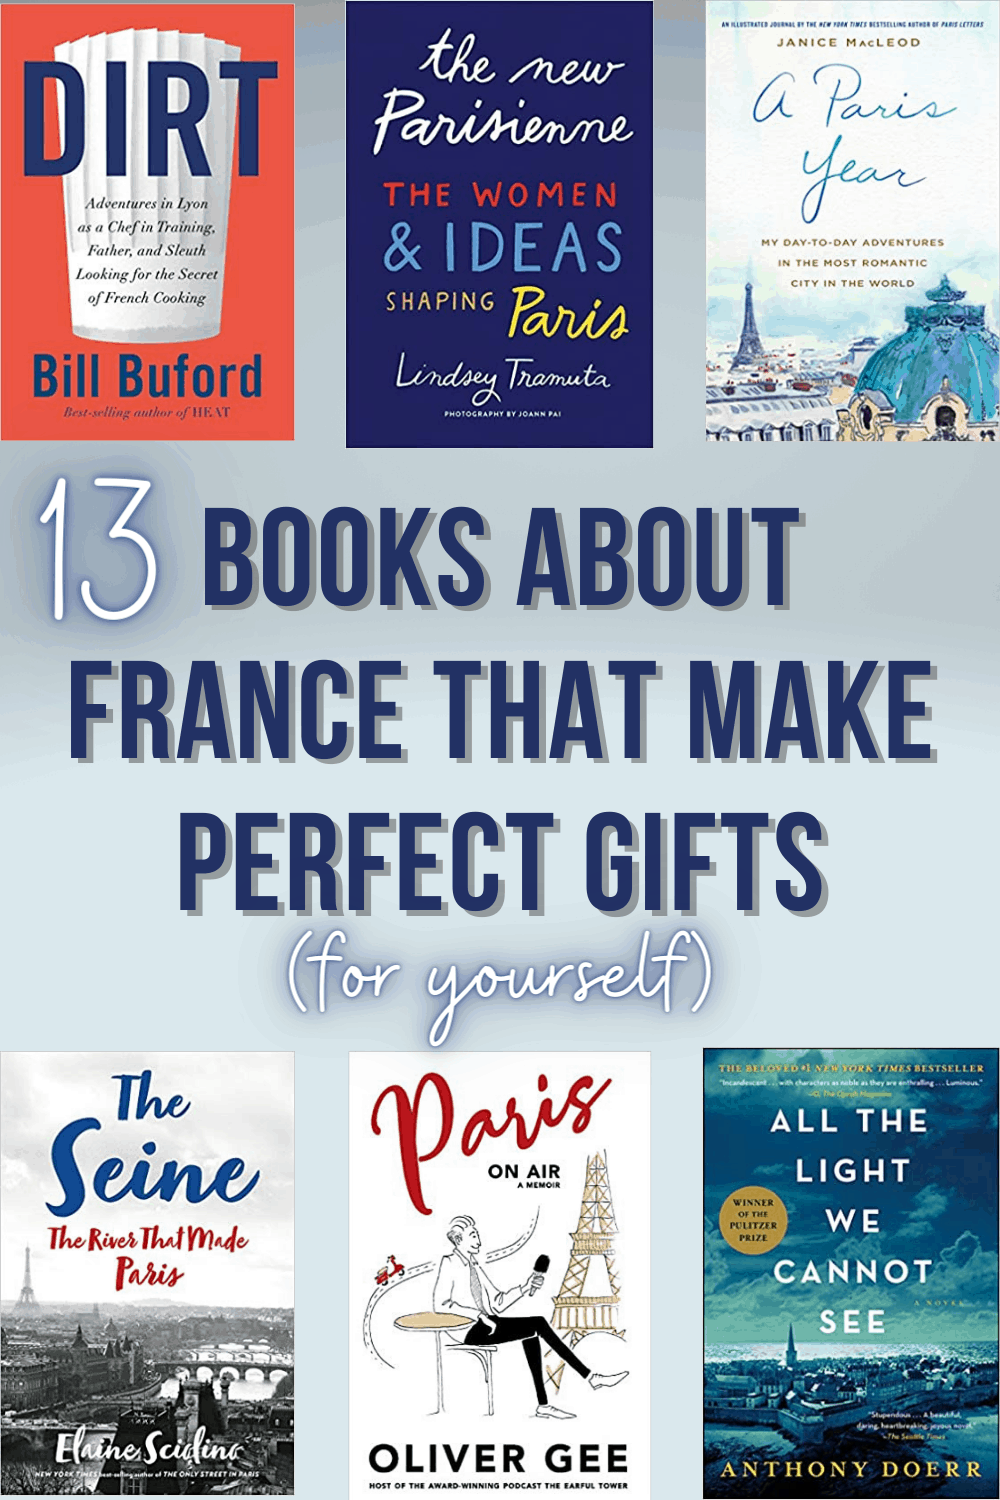 Books about France that make perfect francophile gift ideas